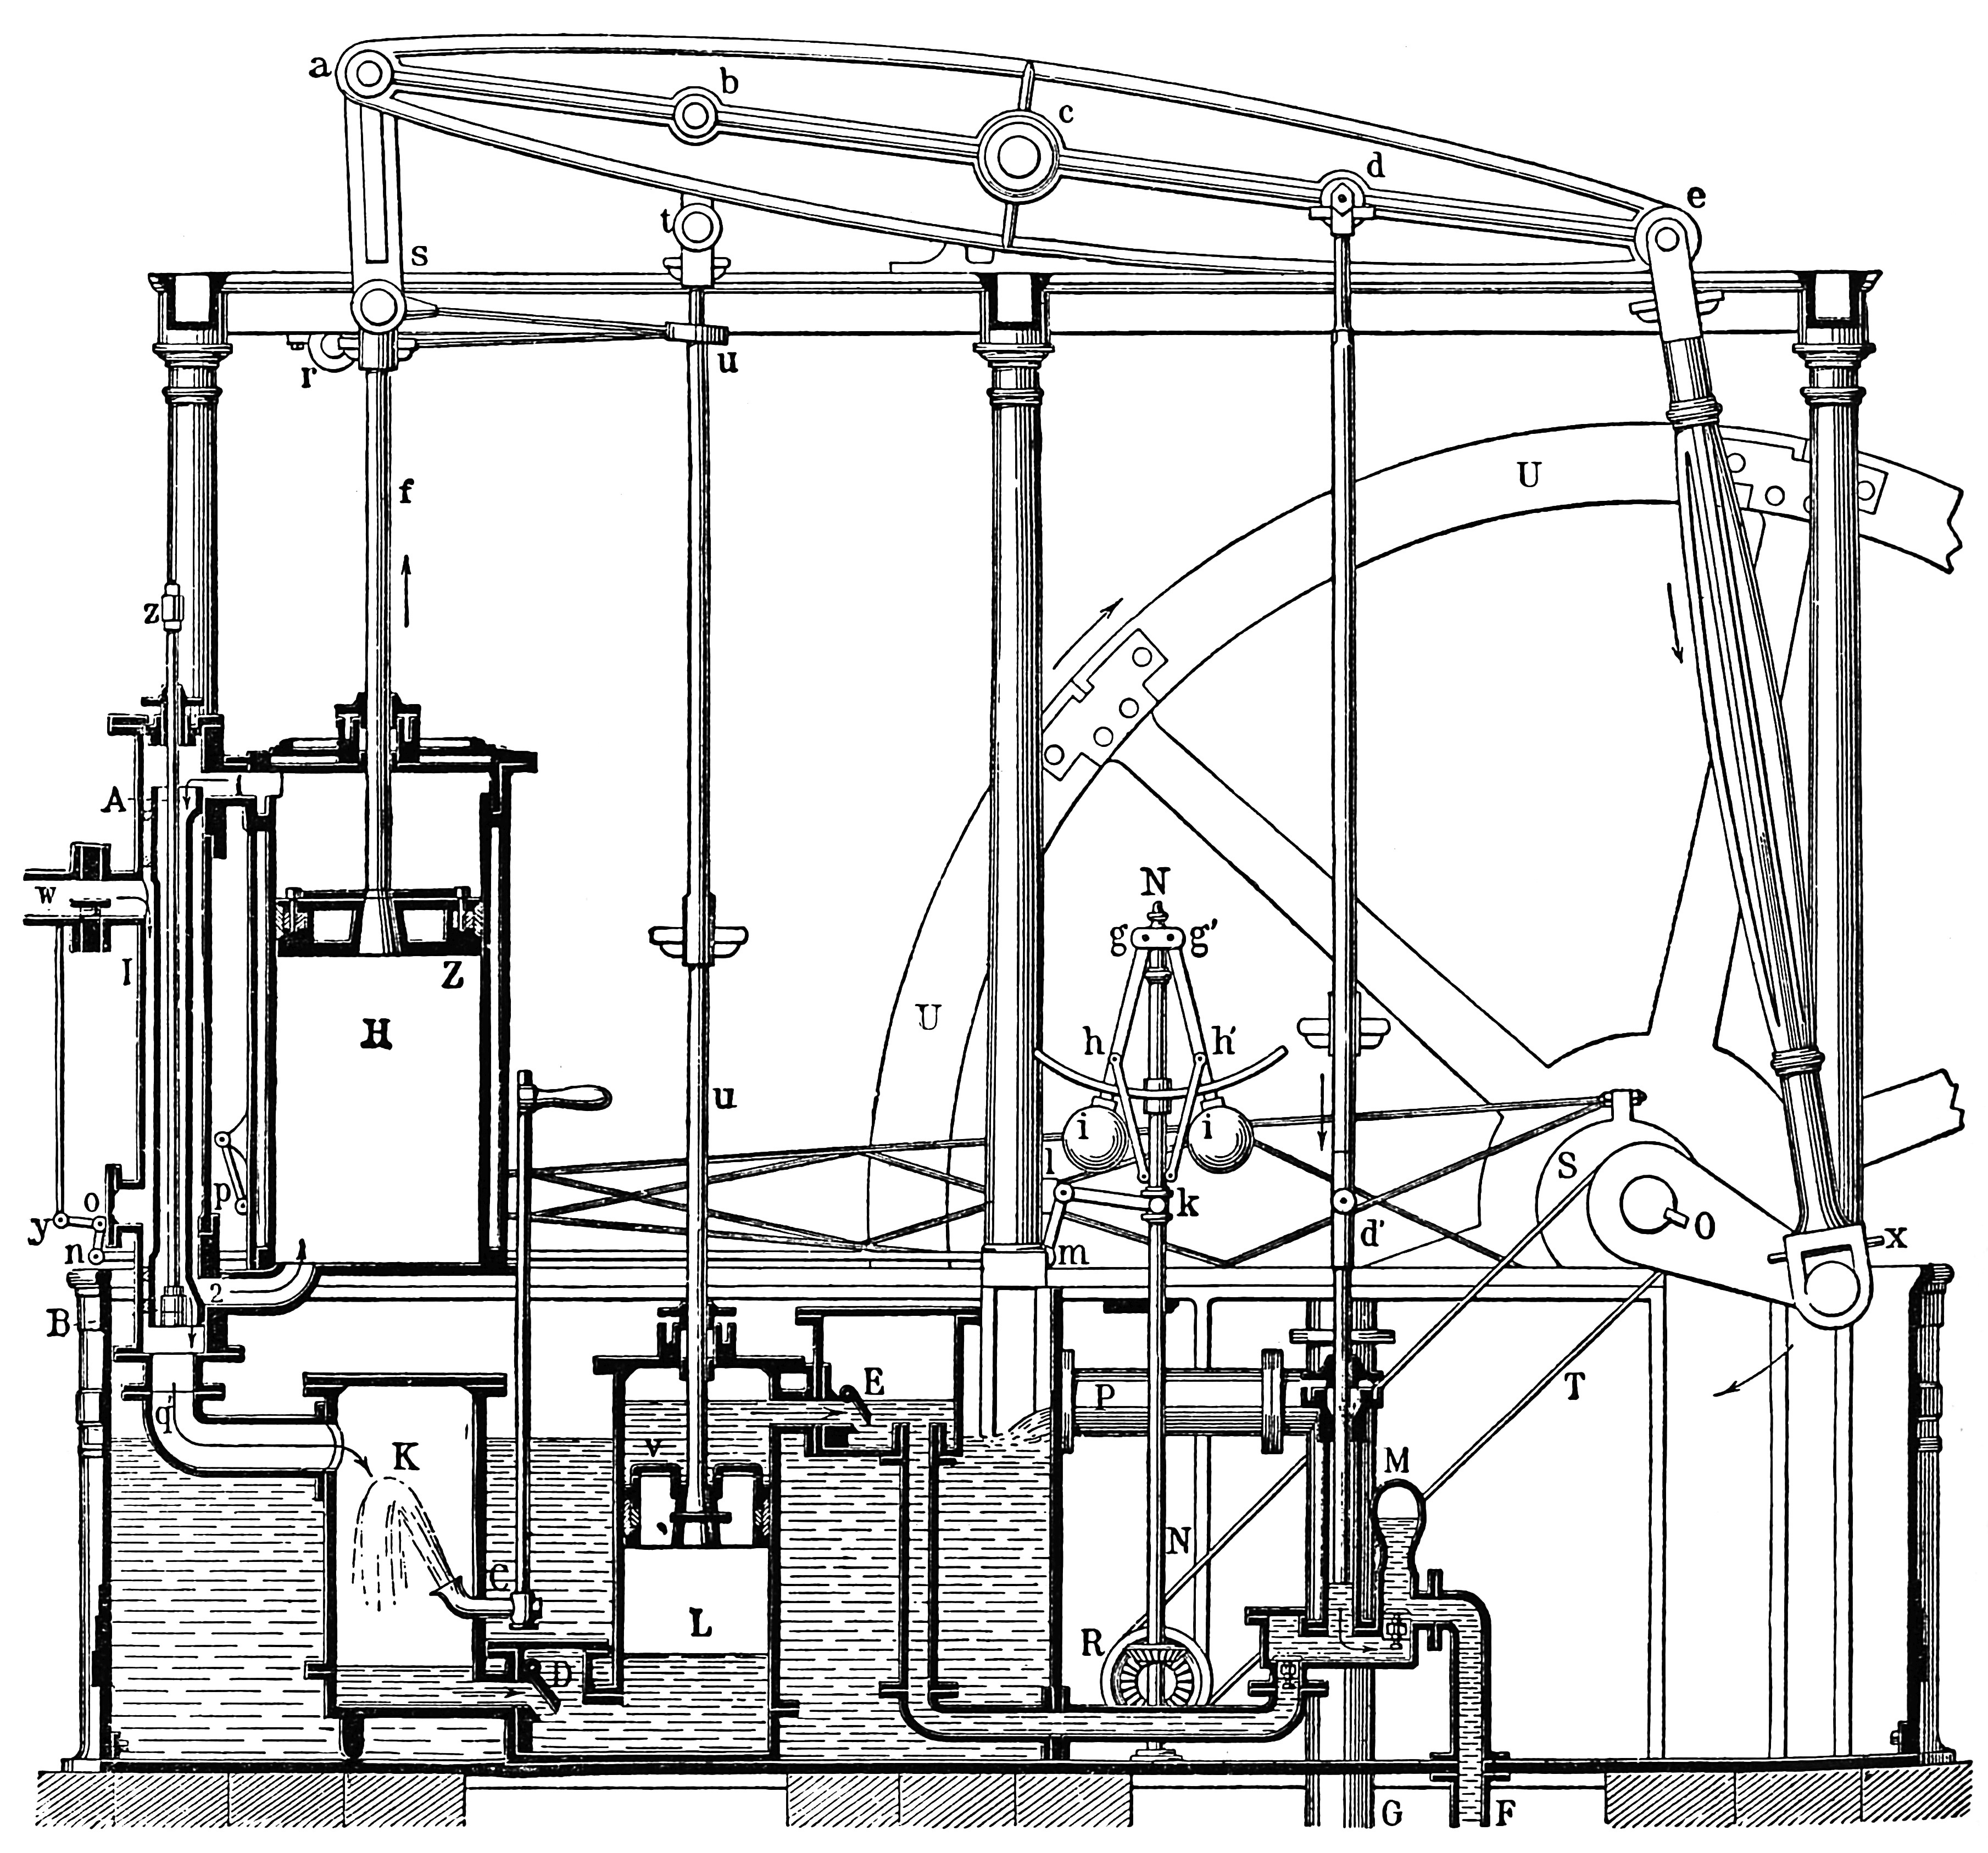 James Watt Steam Engine, illustration from the fourth edition of Meyers Konversations-Lexikon from 1885-1890, now in the Public Domain.